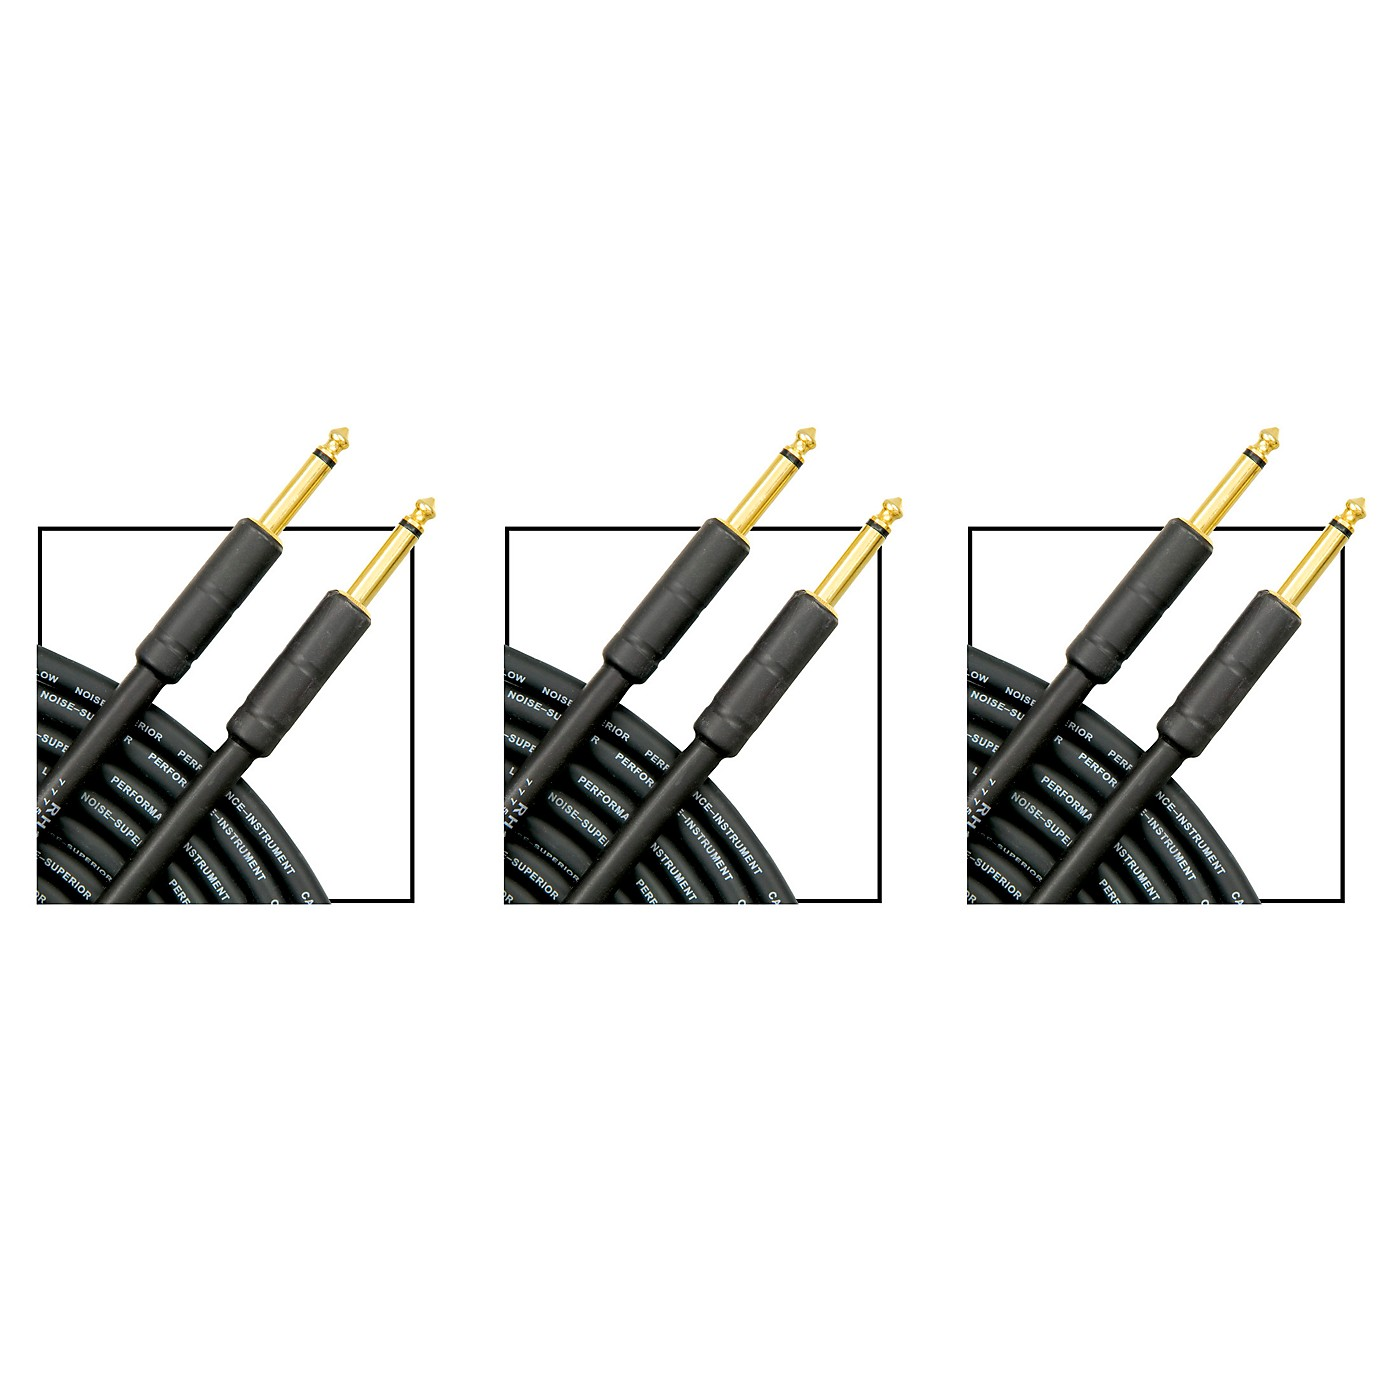 Musician's Gear Standard Instrument Cable - 20 ft. - 3 Pack thumbnail